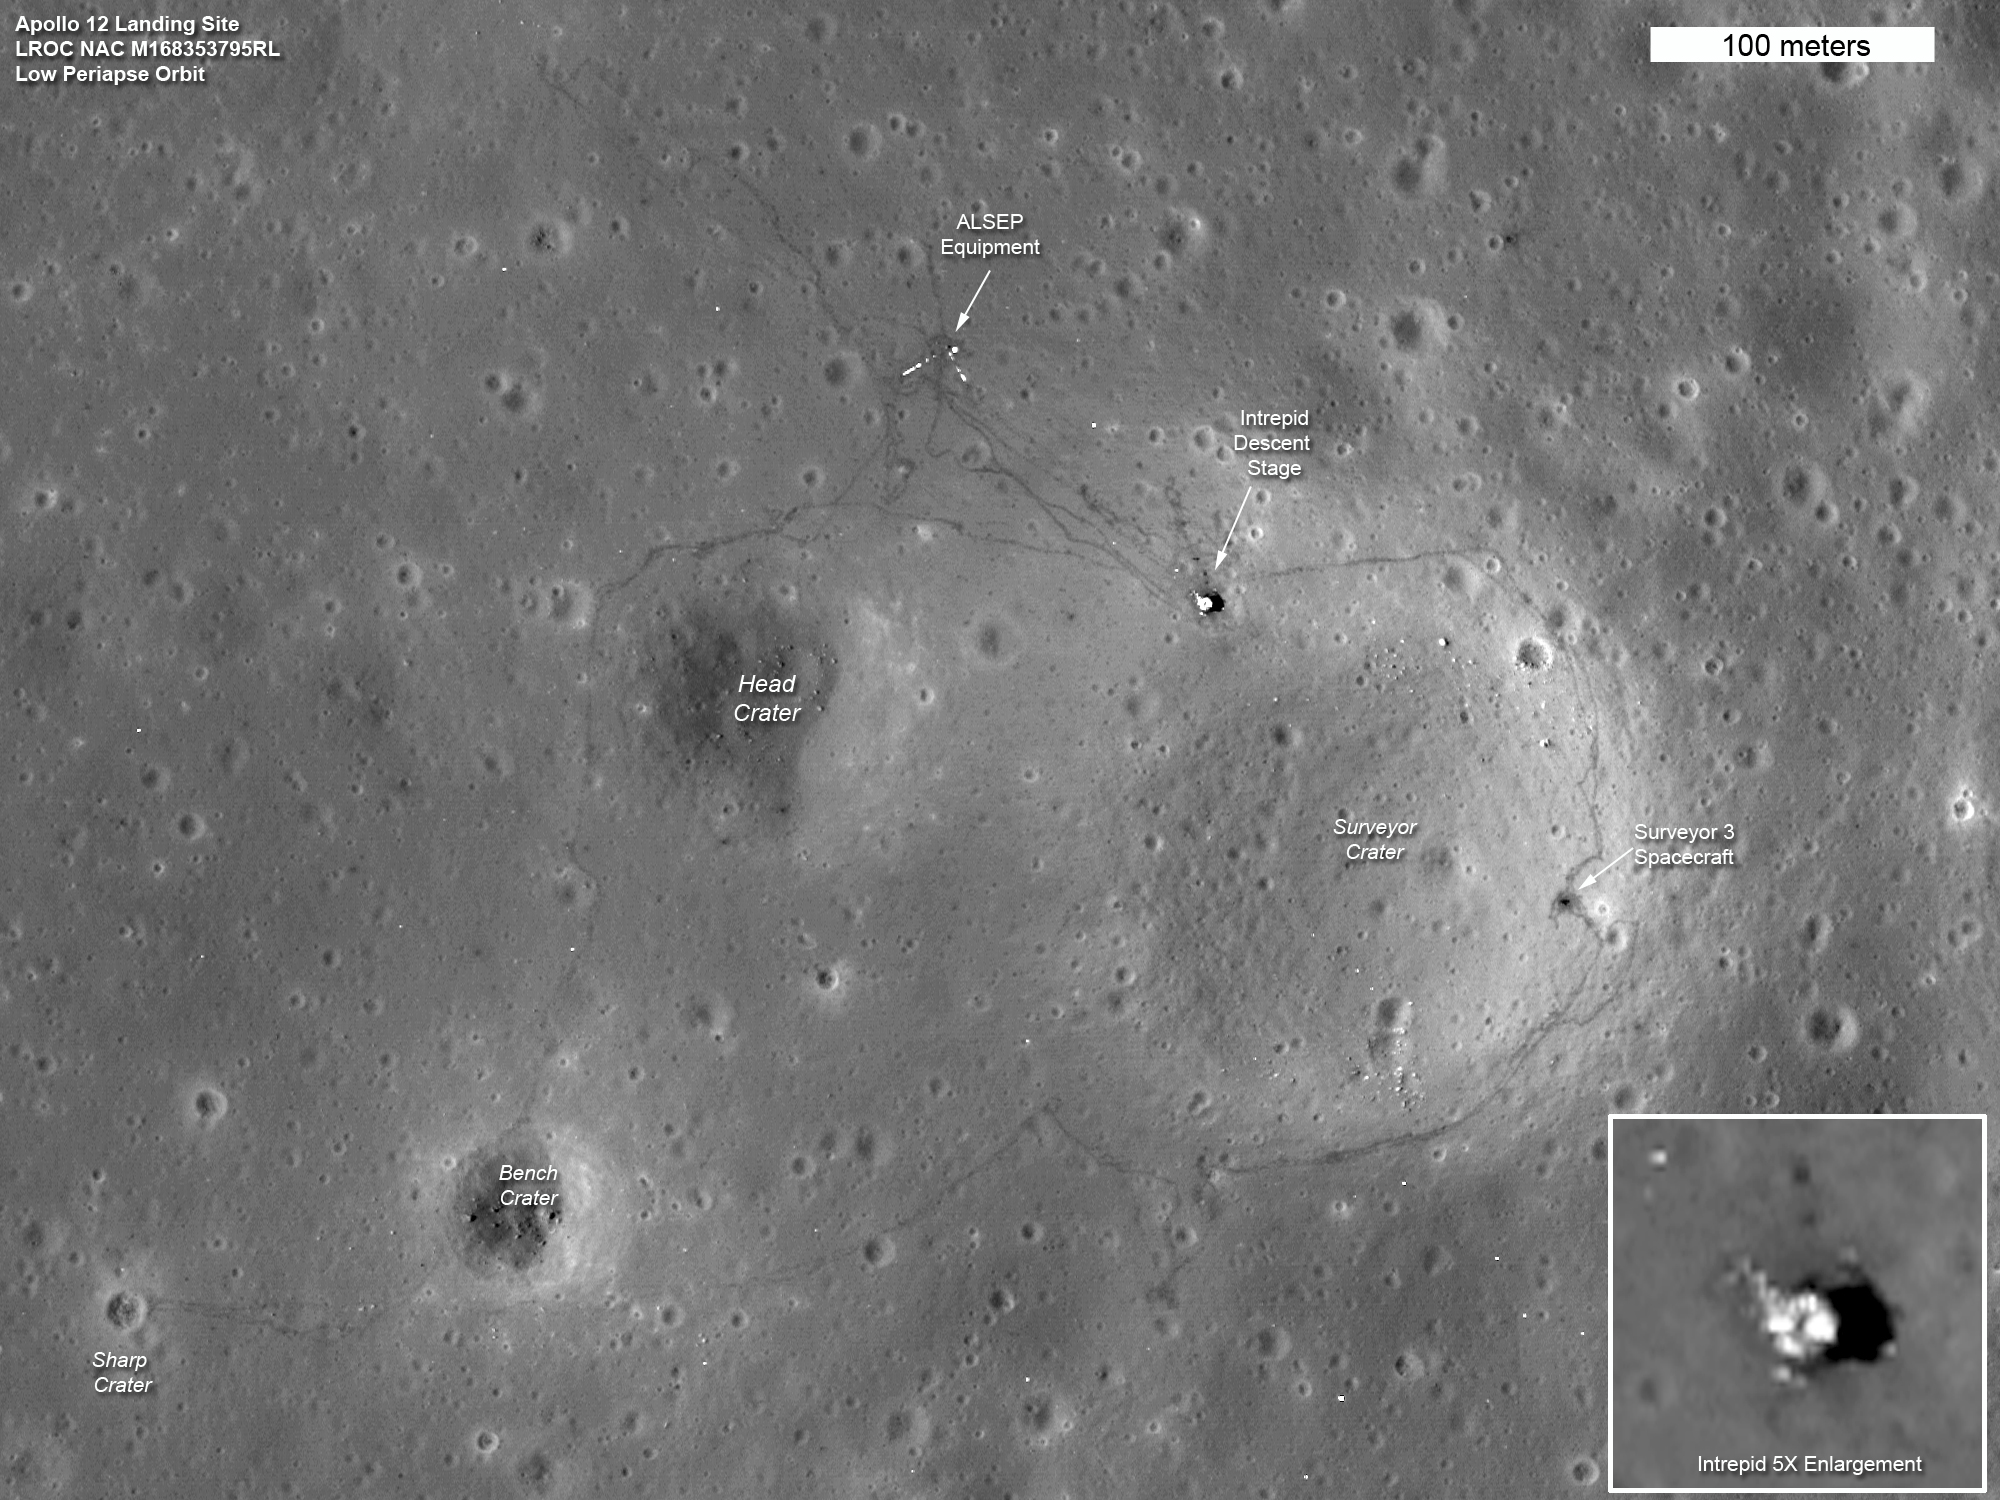 Apollo 12 landing site, taken from NASA's Lunar Reconnaissance Orbiter in 2011